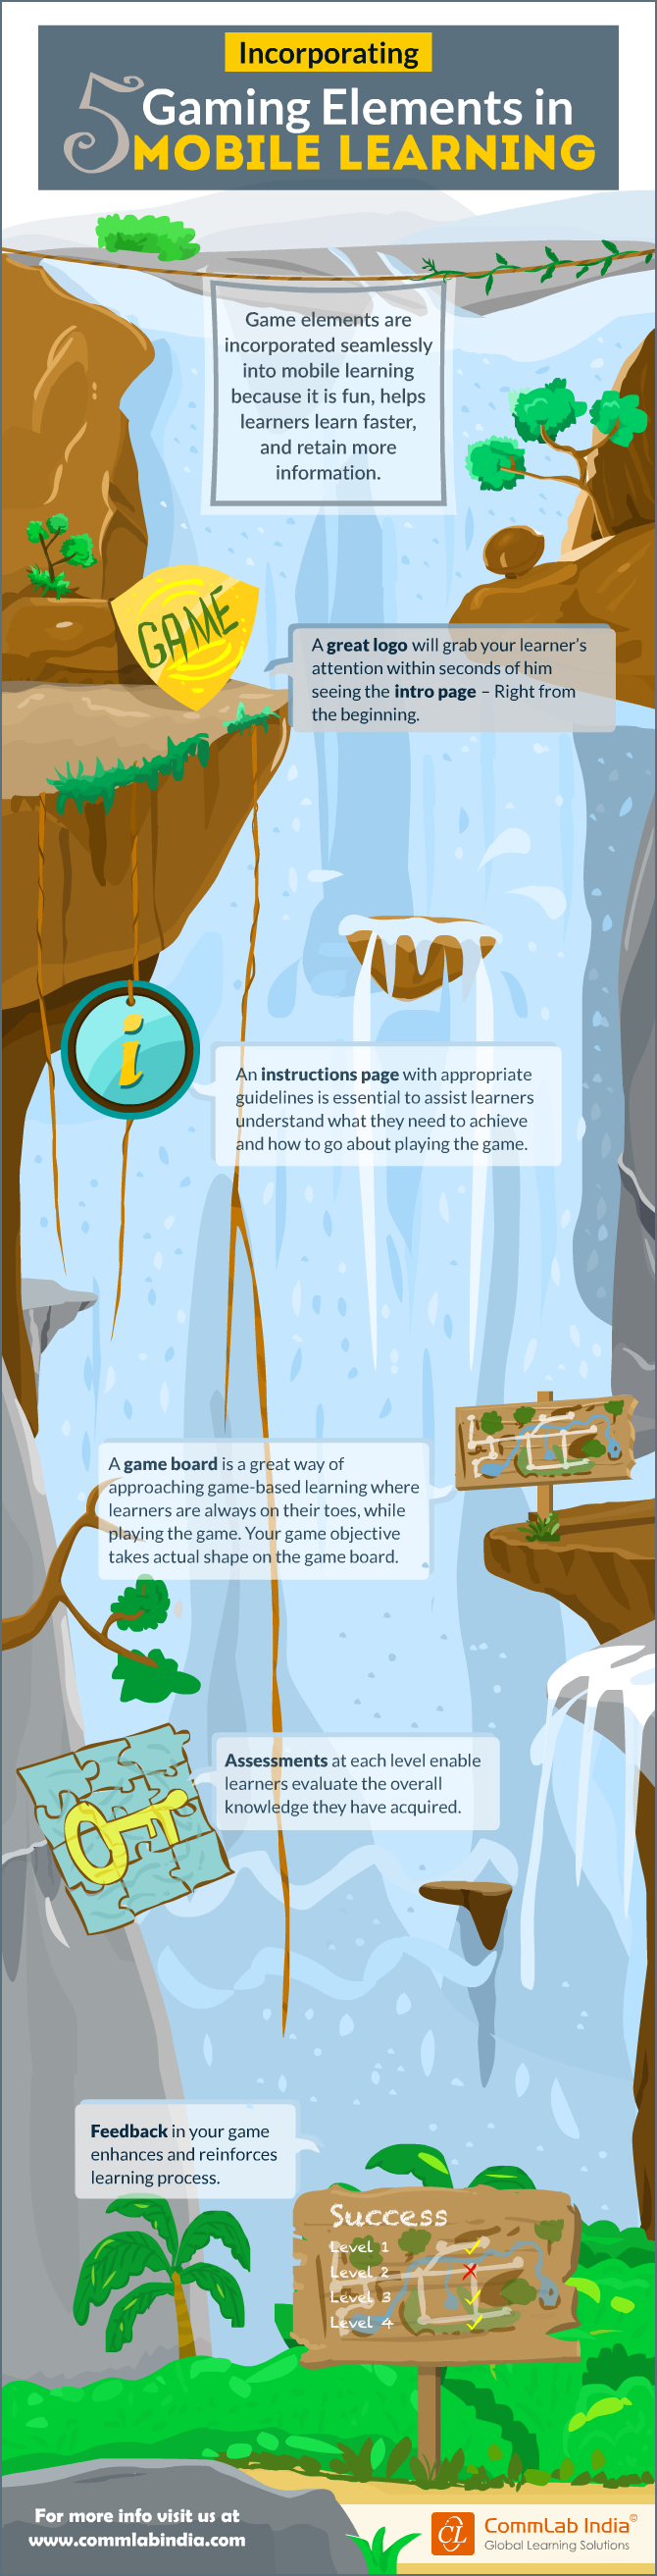 Incorporating 5 Gaming Elements in Mobile Learning [Infographic]